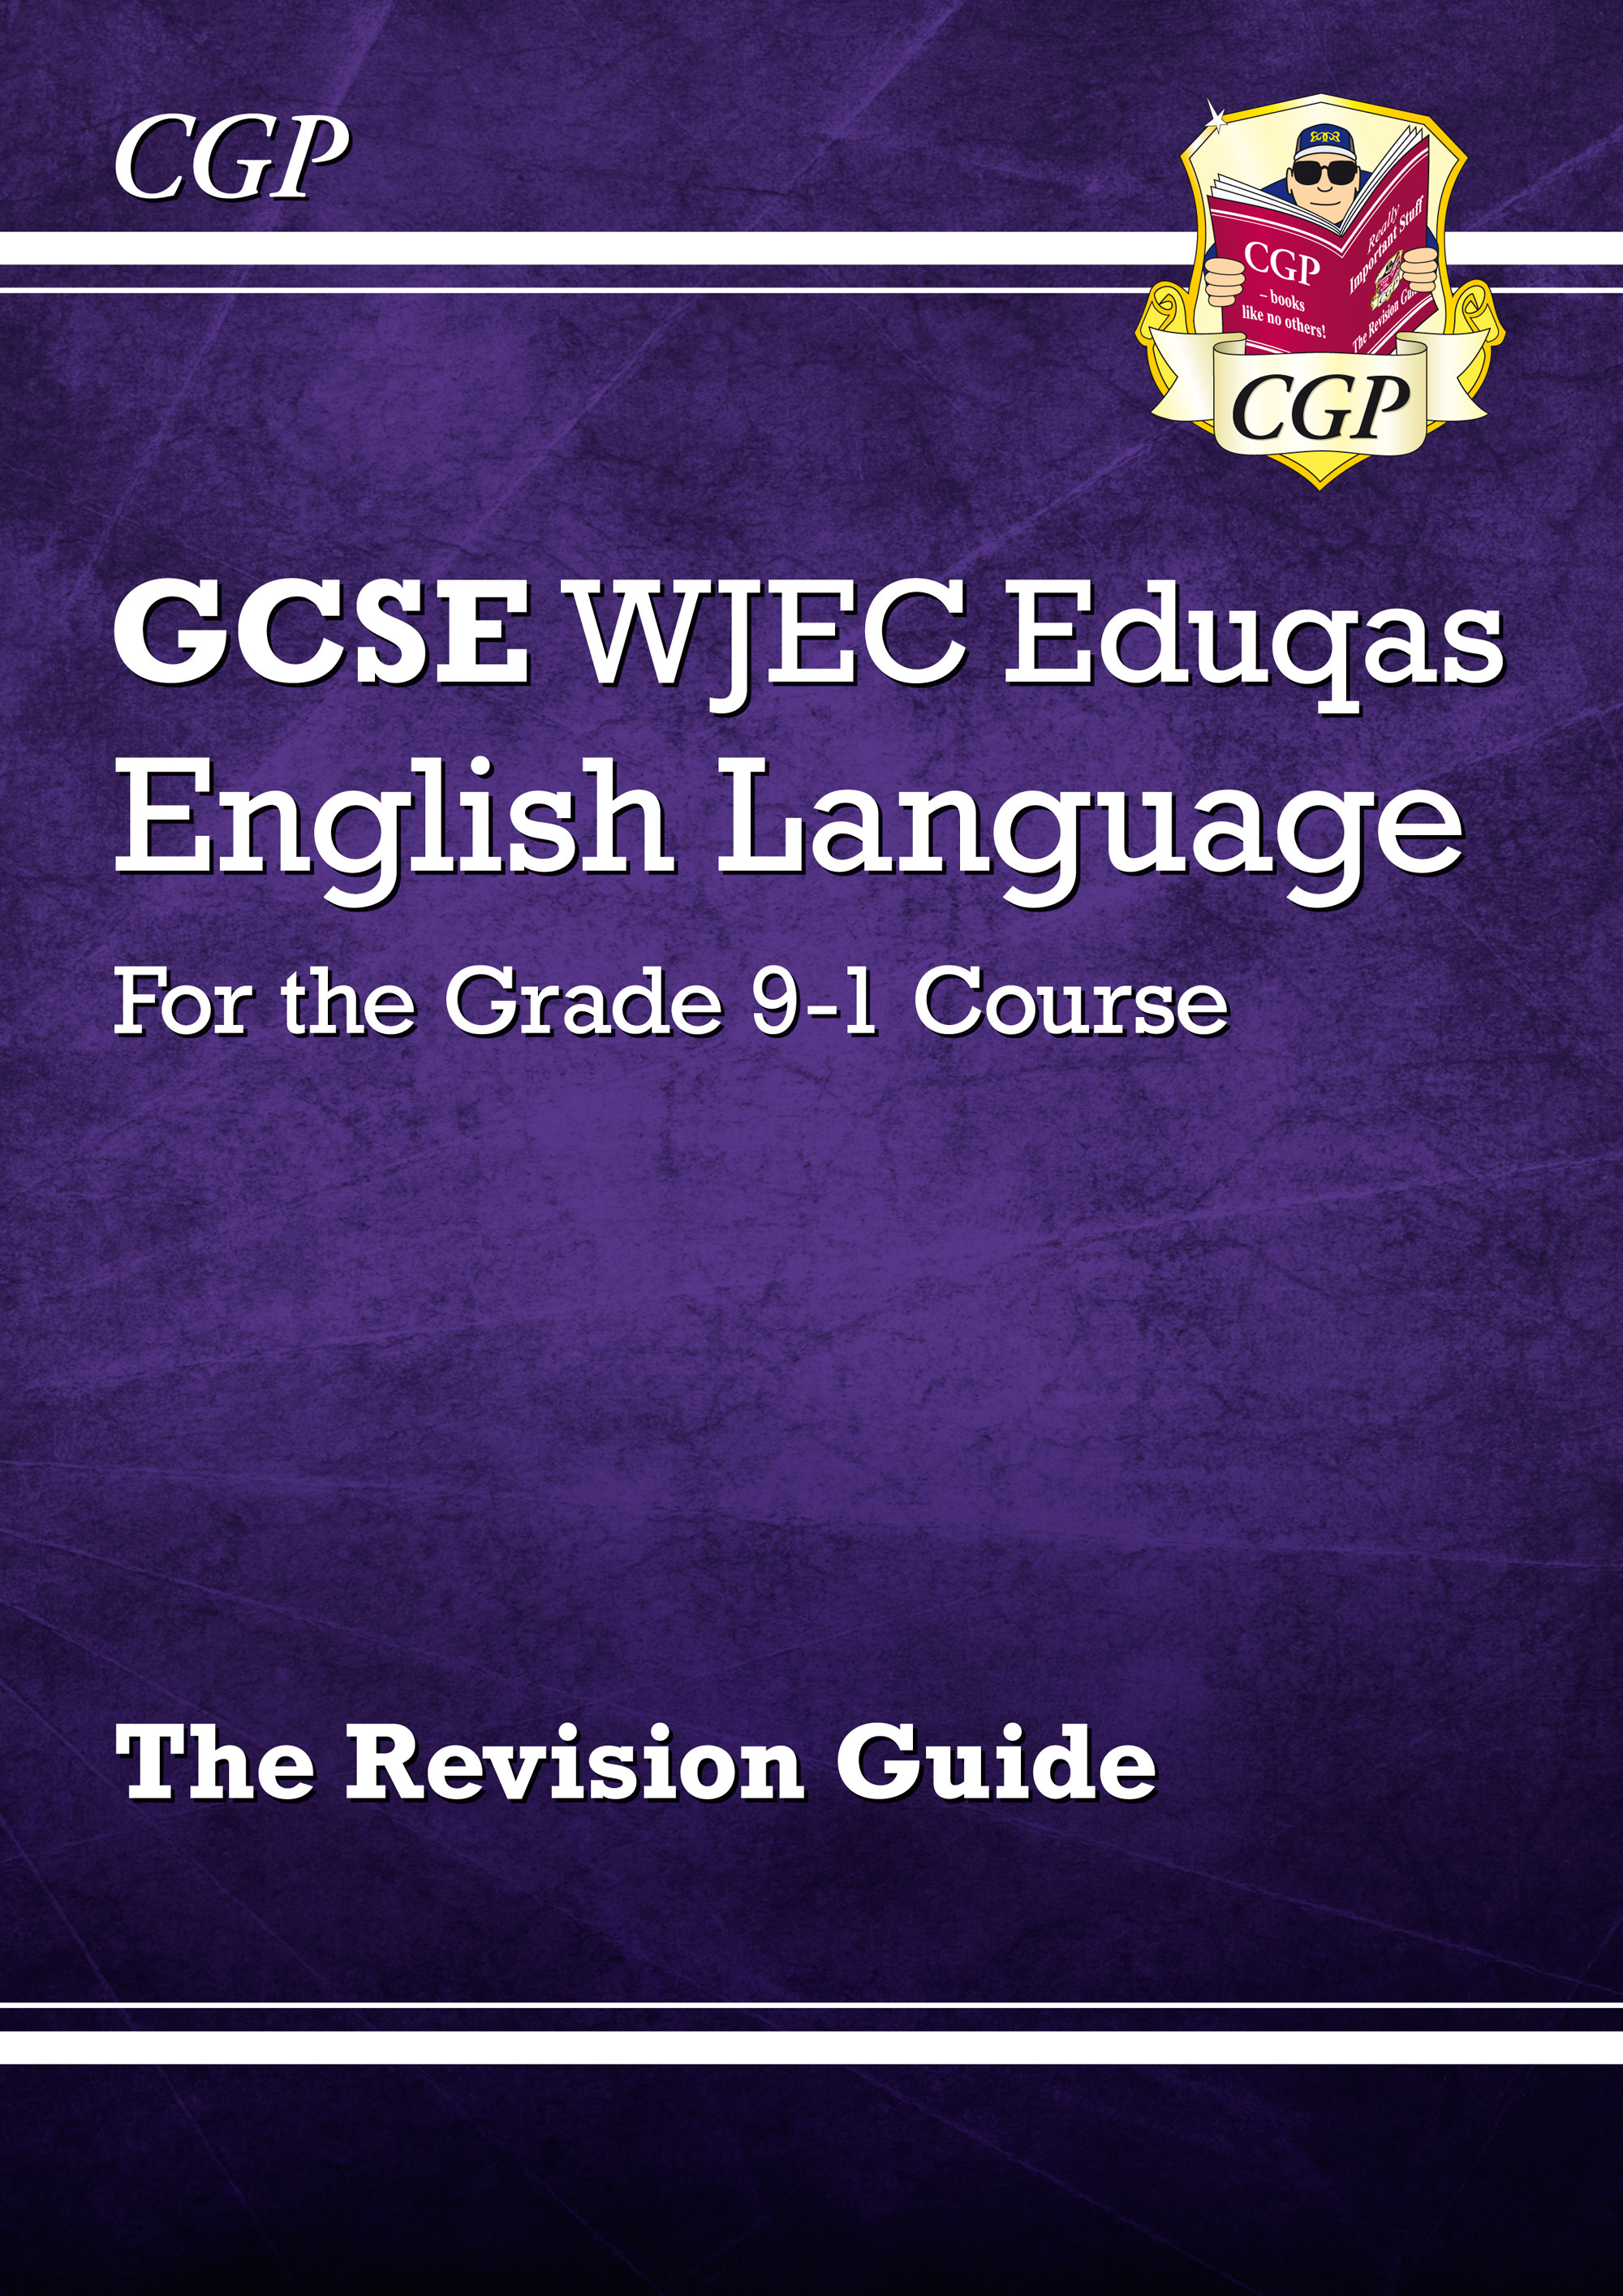 ENWR41 - GCSE English Language WJEC Eduqas Revision Guide - for the Grade 9-1 Course